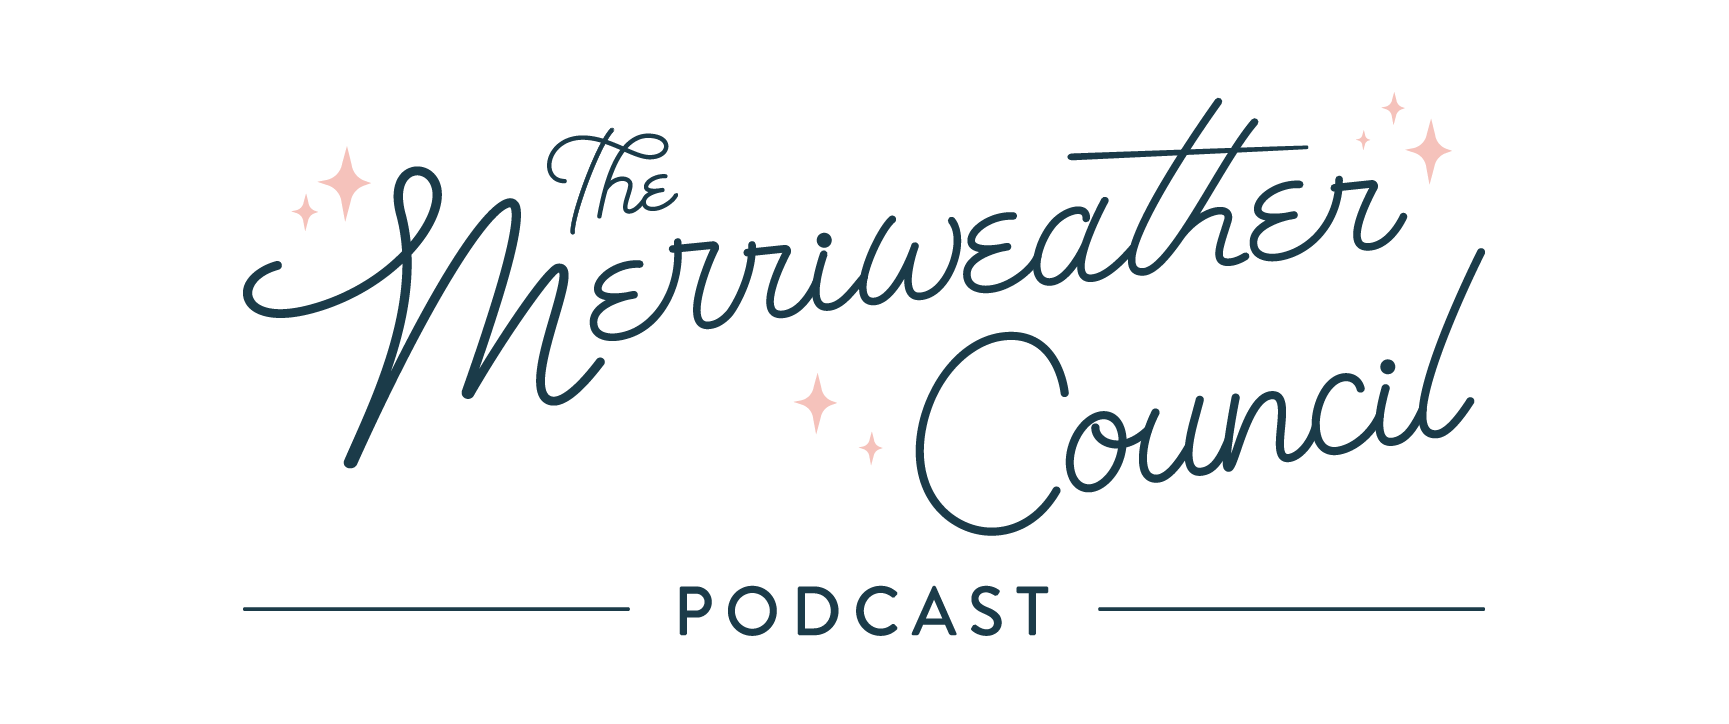 TheMerriweatherCouncil.Podcast.Logo.Main.150DPI